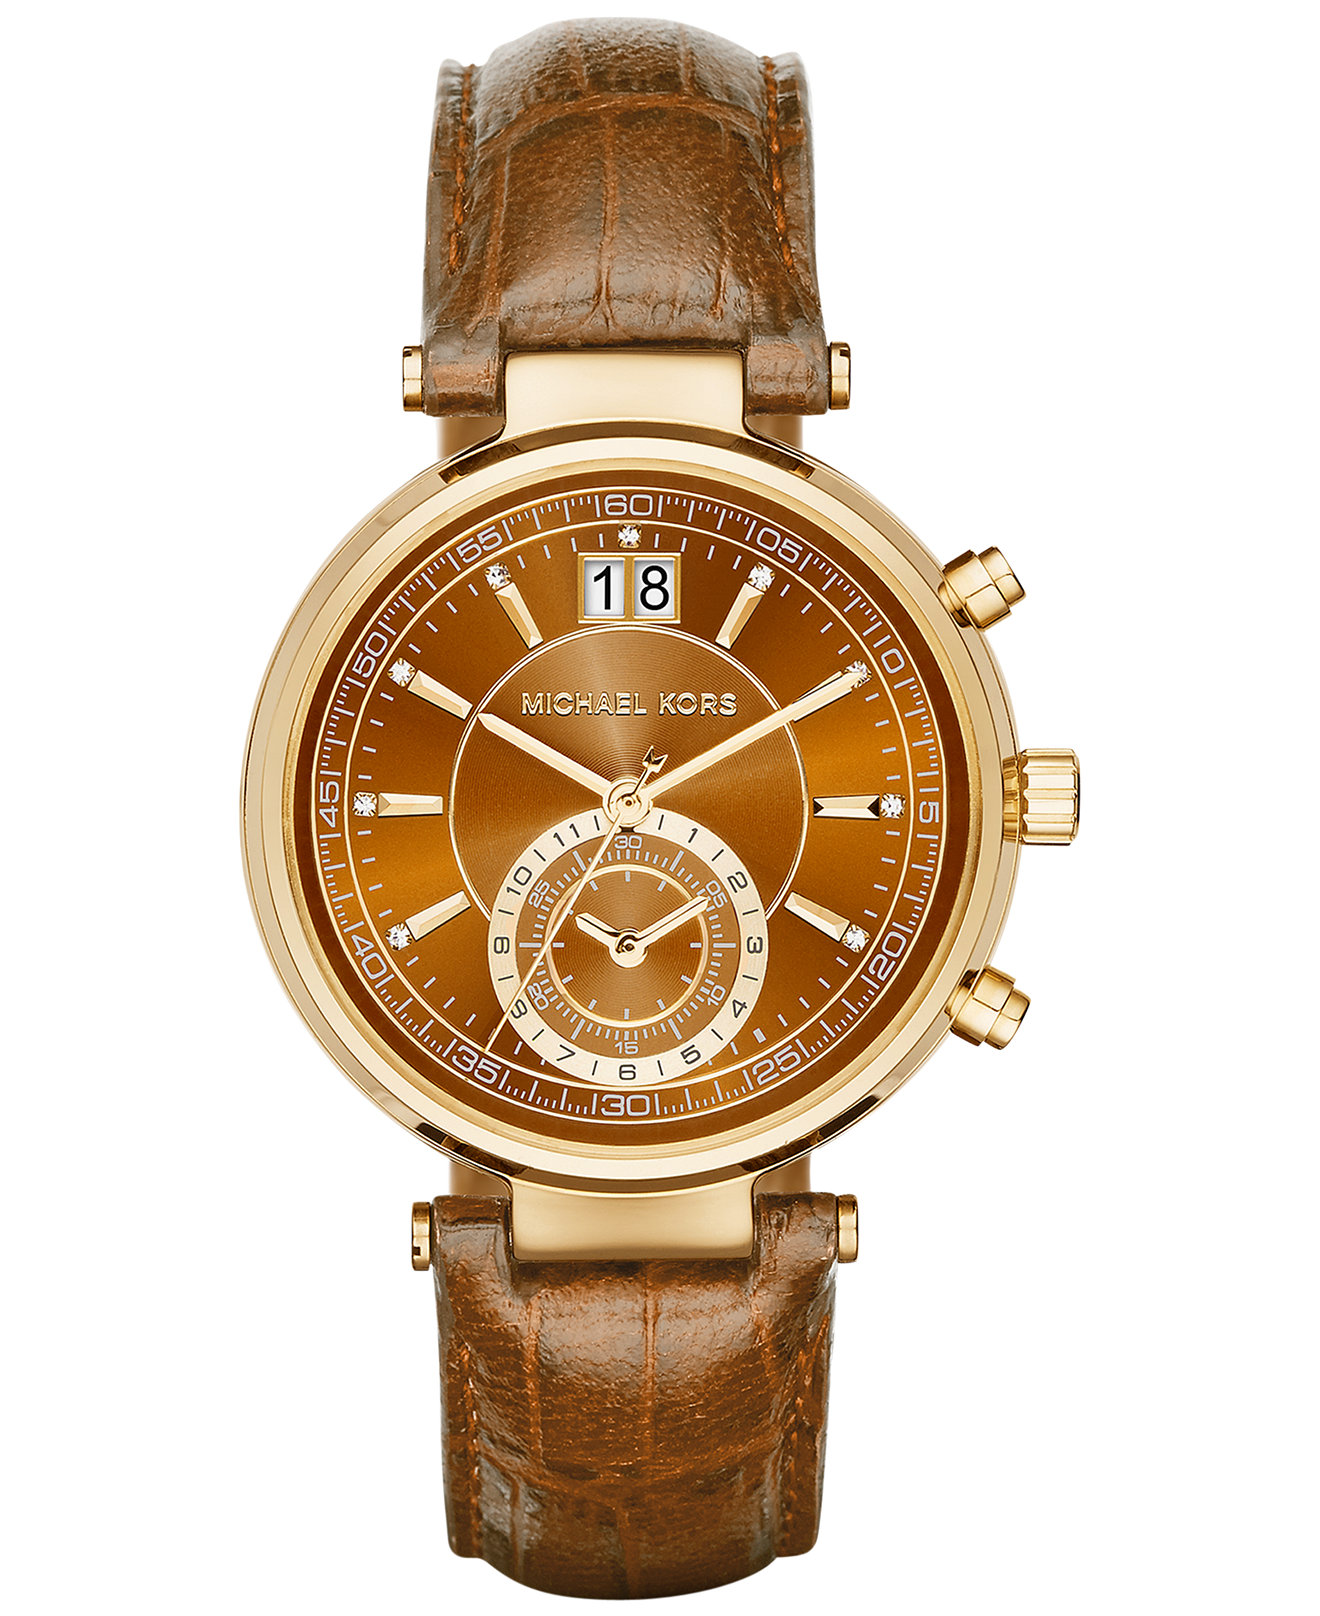 Michael Kors Amber Sawyer Watch MK2424